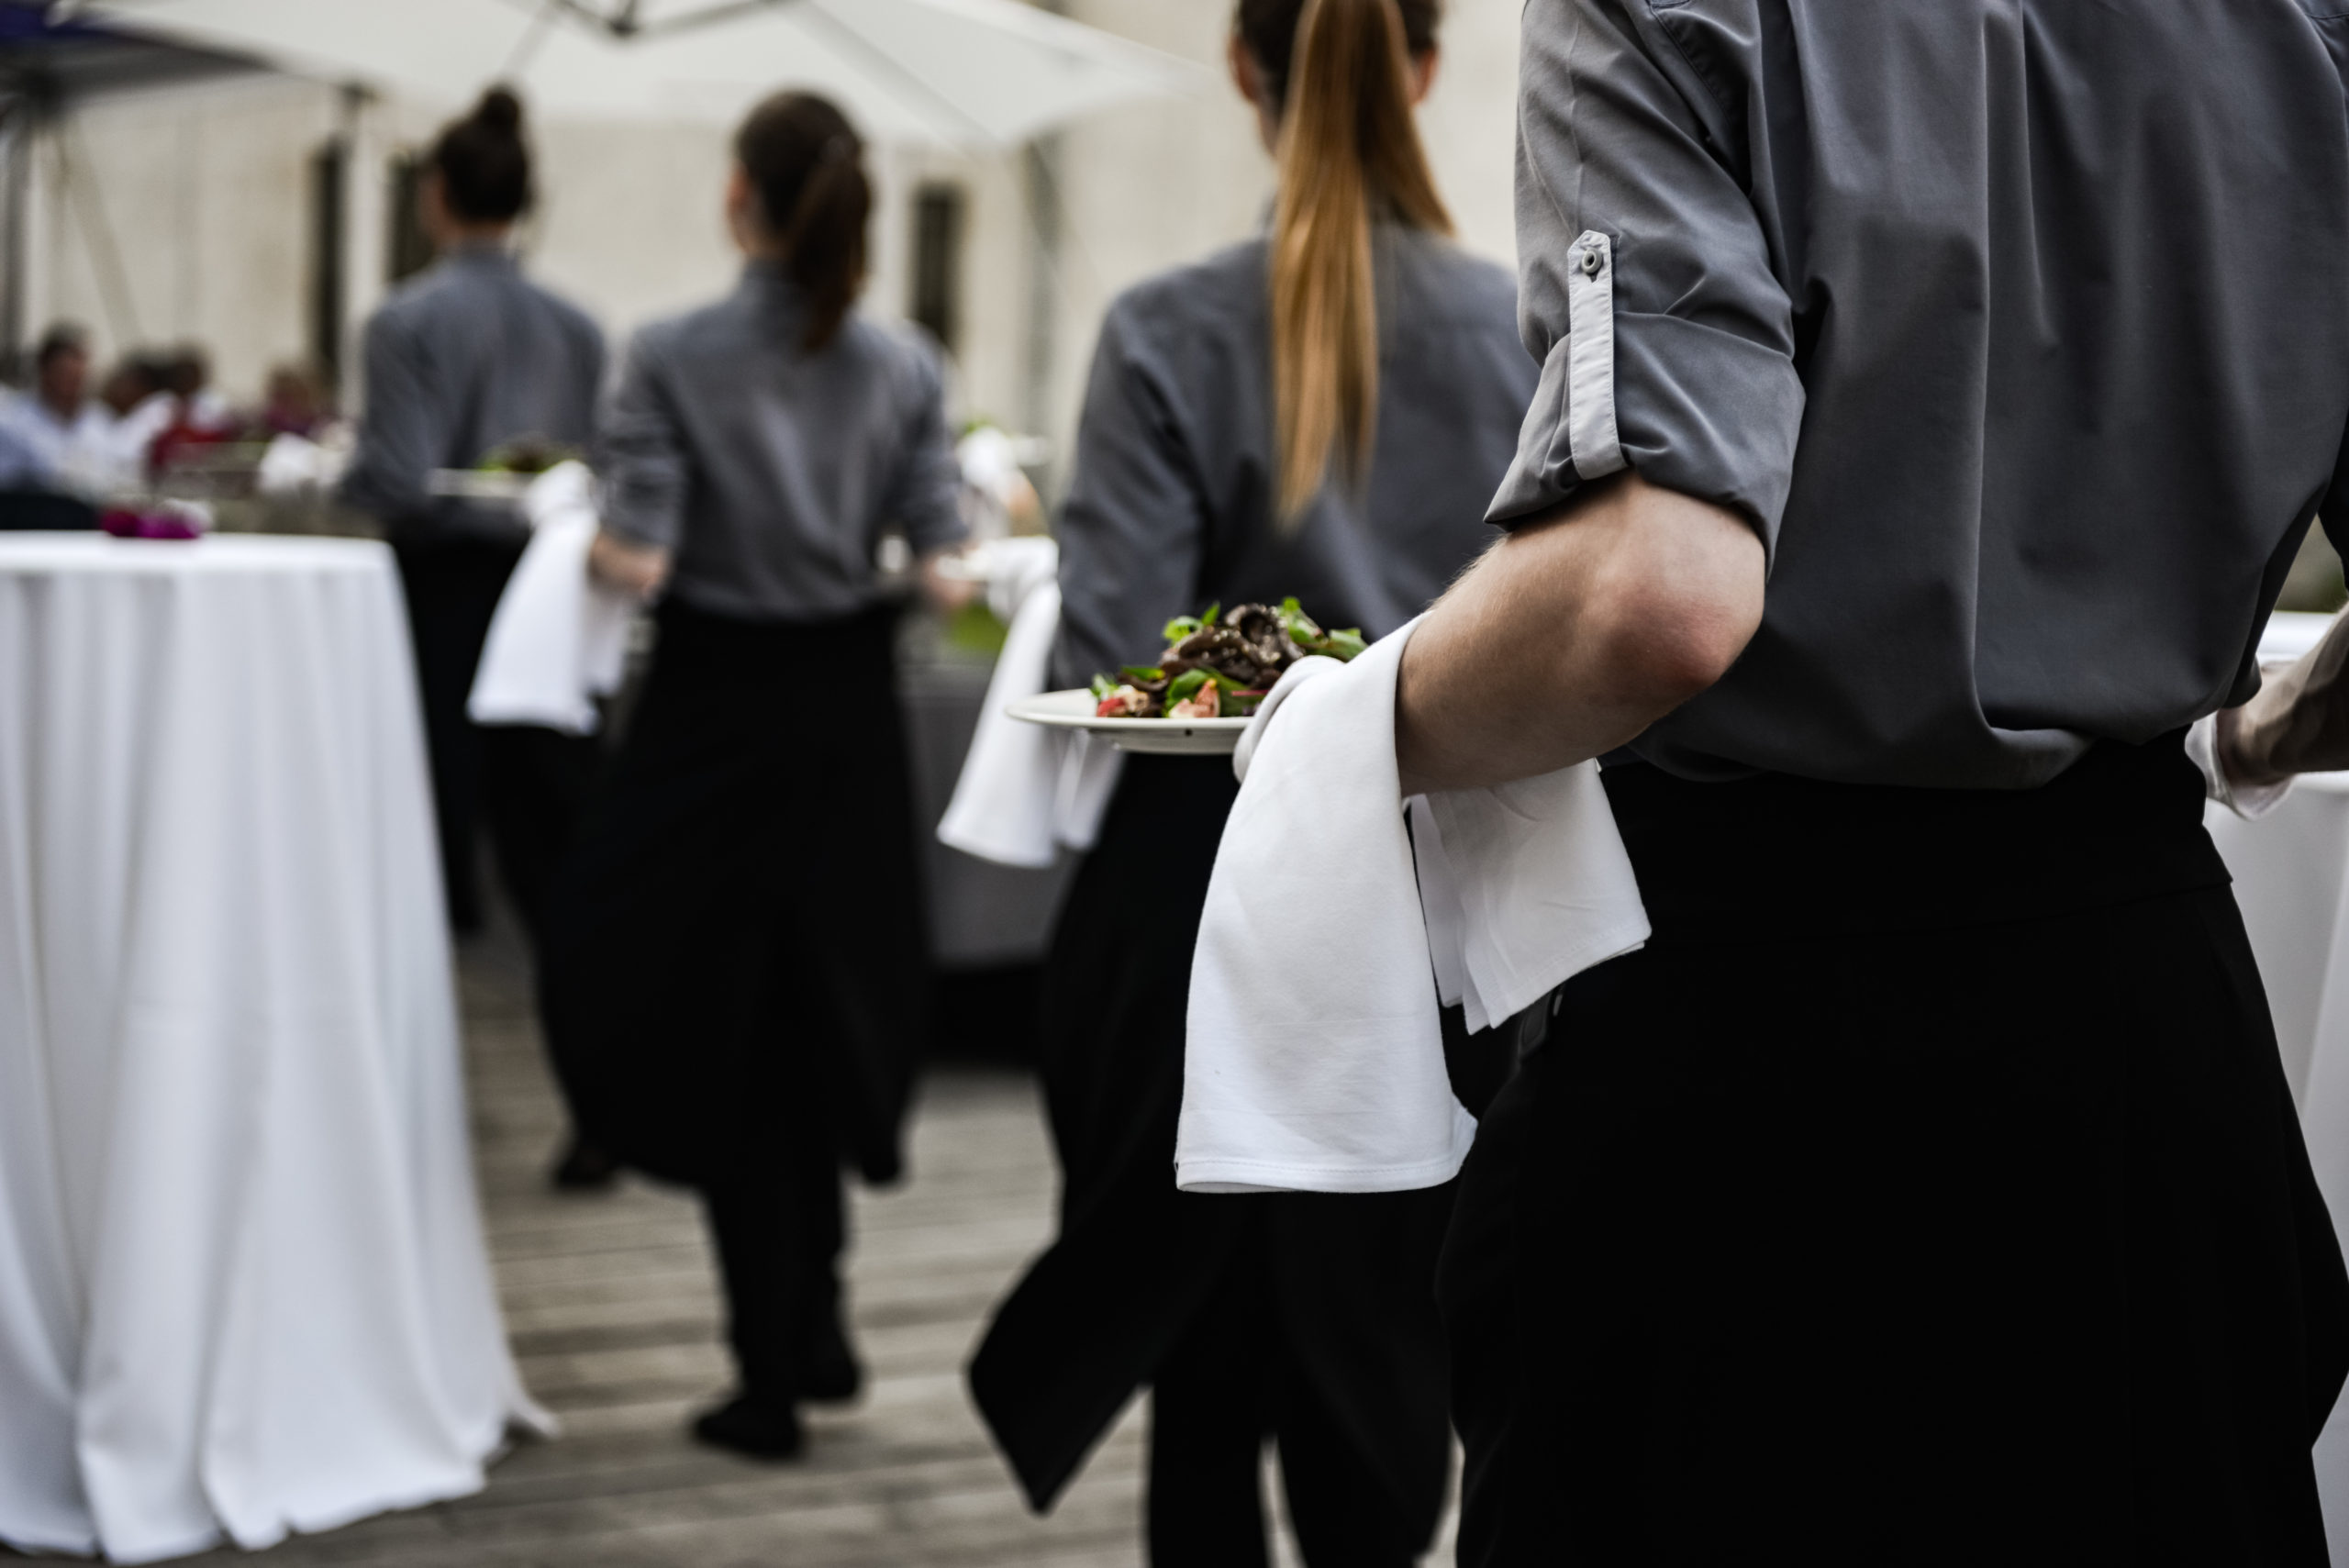 California Court Rules That Food and Beverage Service Charges May Be Gratuities Owed to Employees